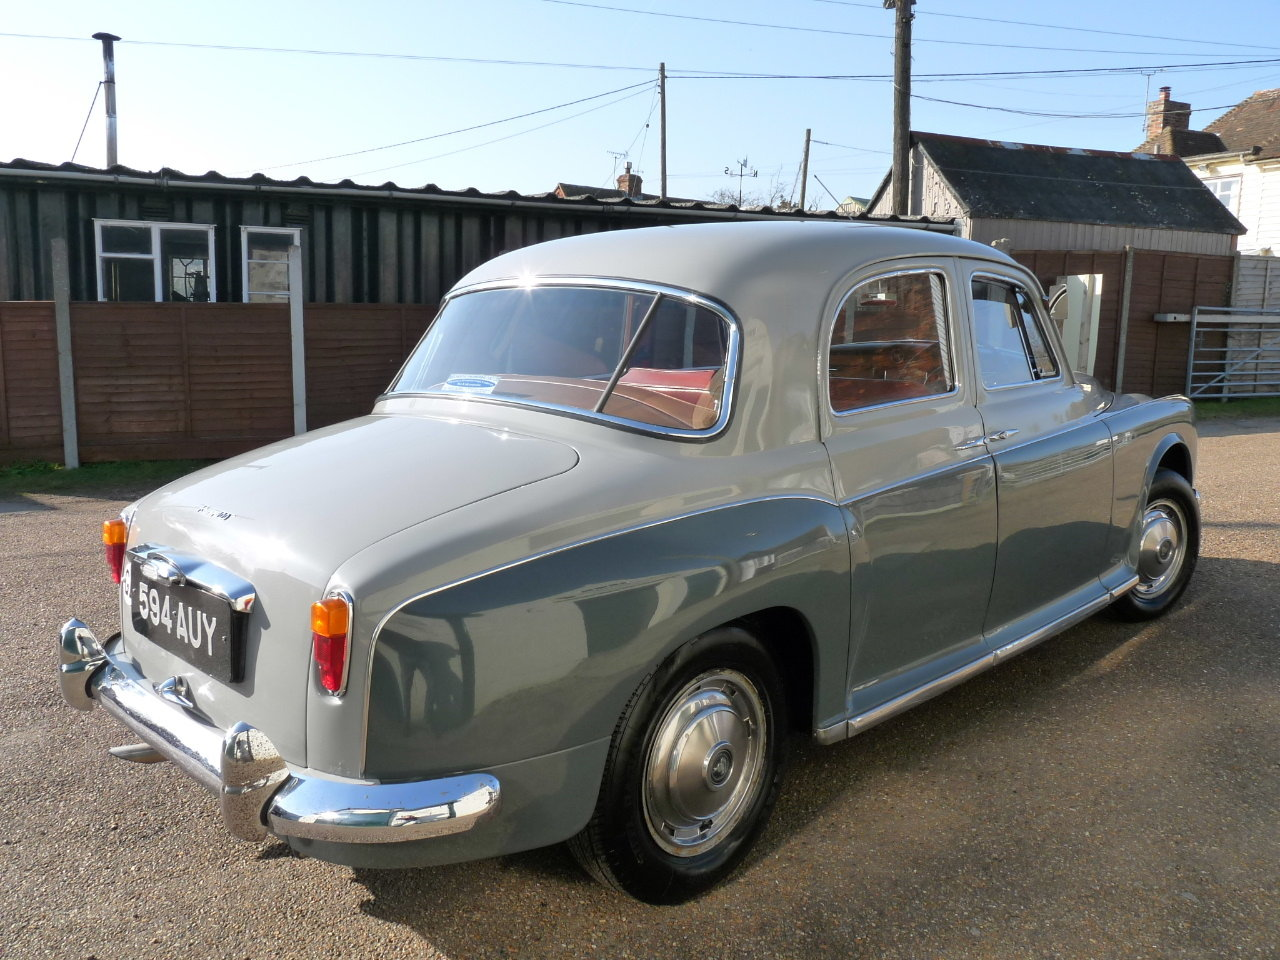 1960 Rover 100 P4, 3.0 litre Rover P5 engine fitted, Sold SOLD (picture 6 of 6)